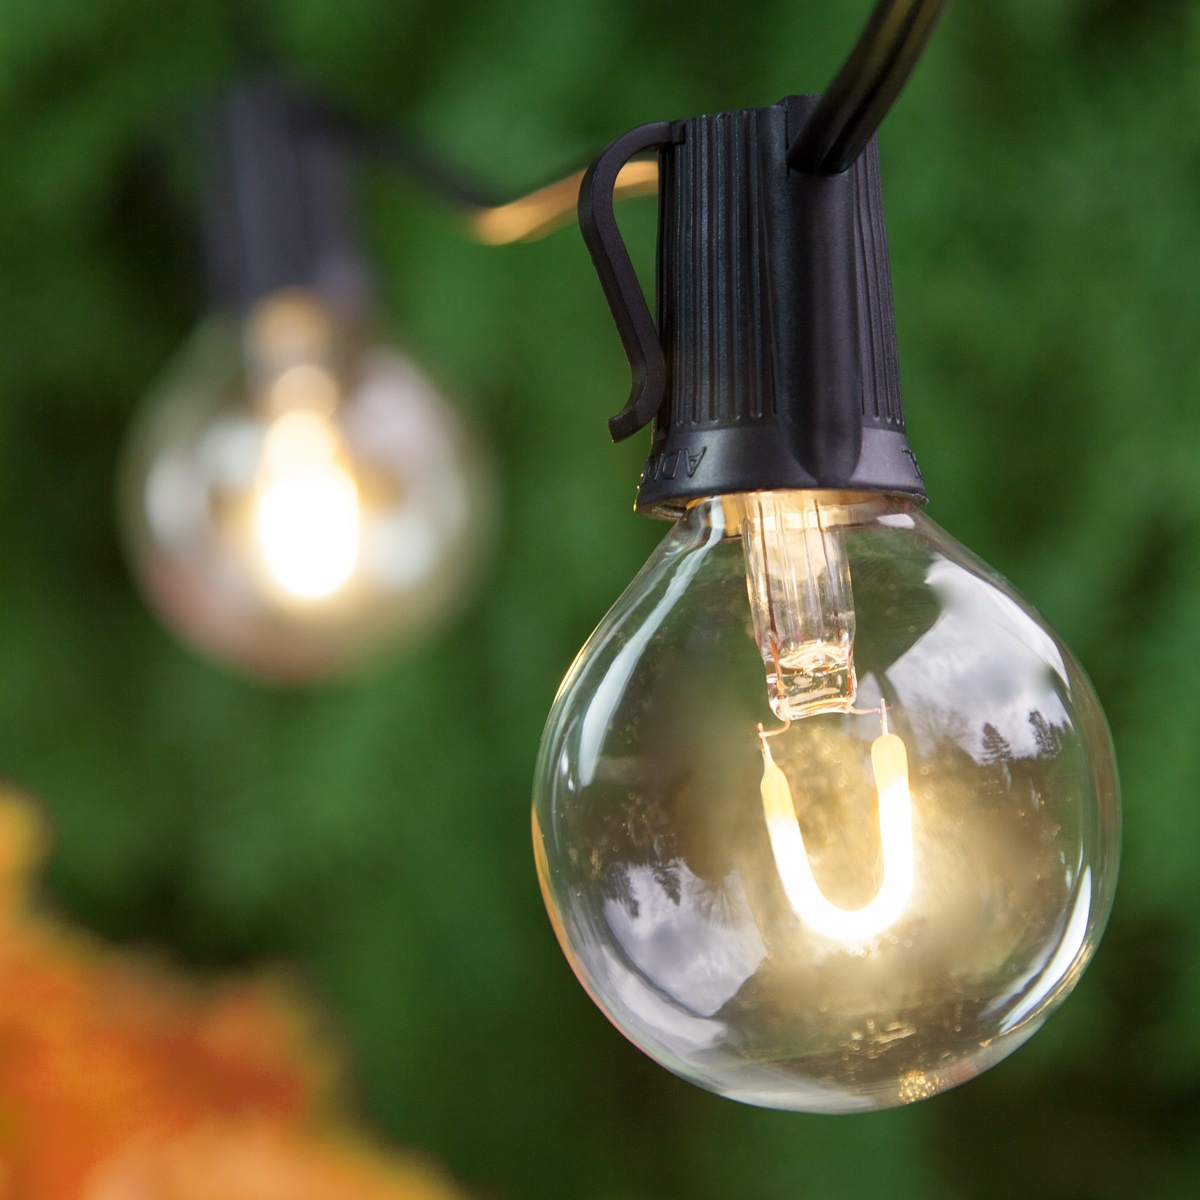 Shatterproof Patio Light Bulbs